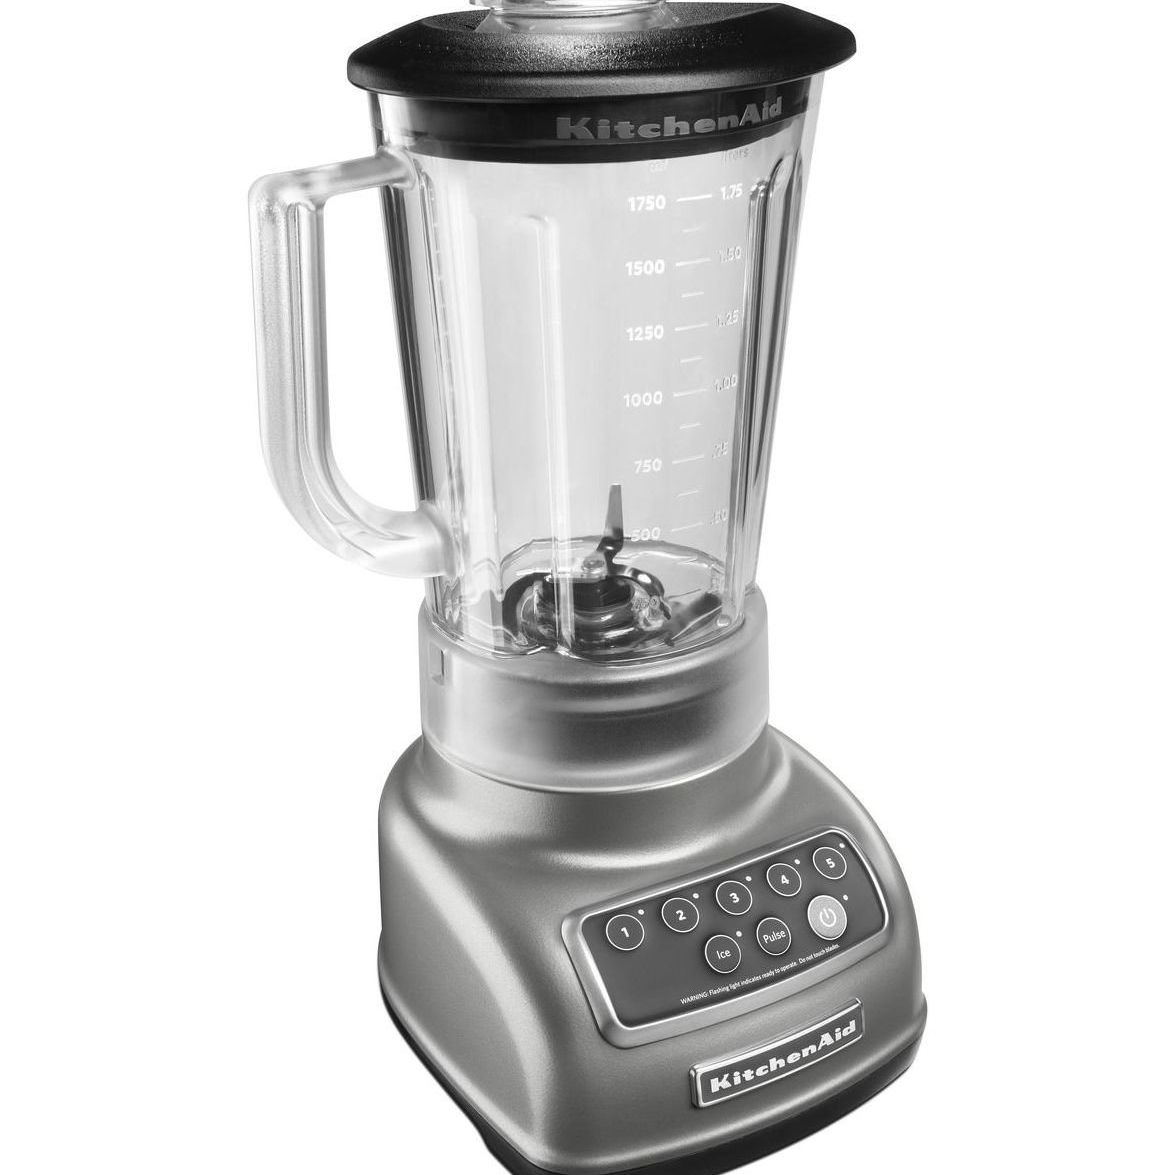 kitchen blenders stationary islands the 10 best to buy in 2019 overall kitchenaid 5 speed blender